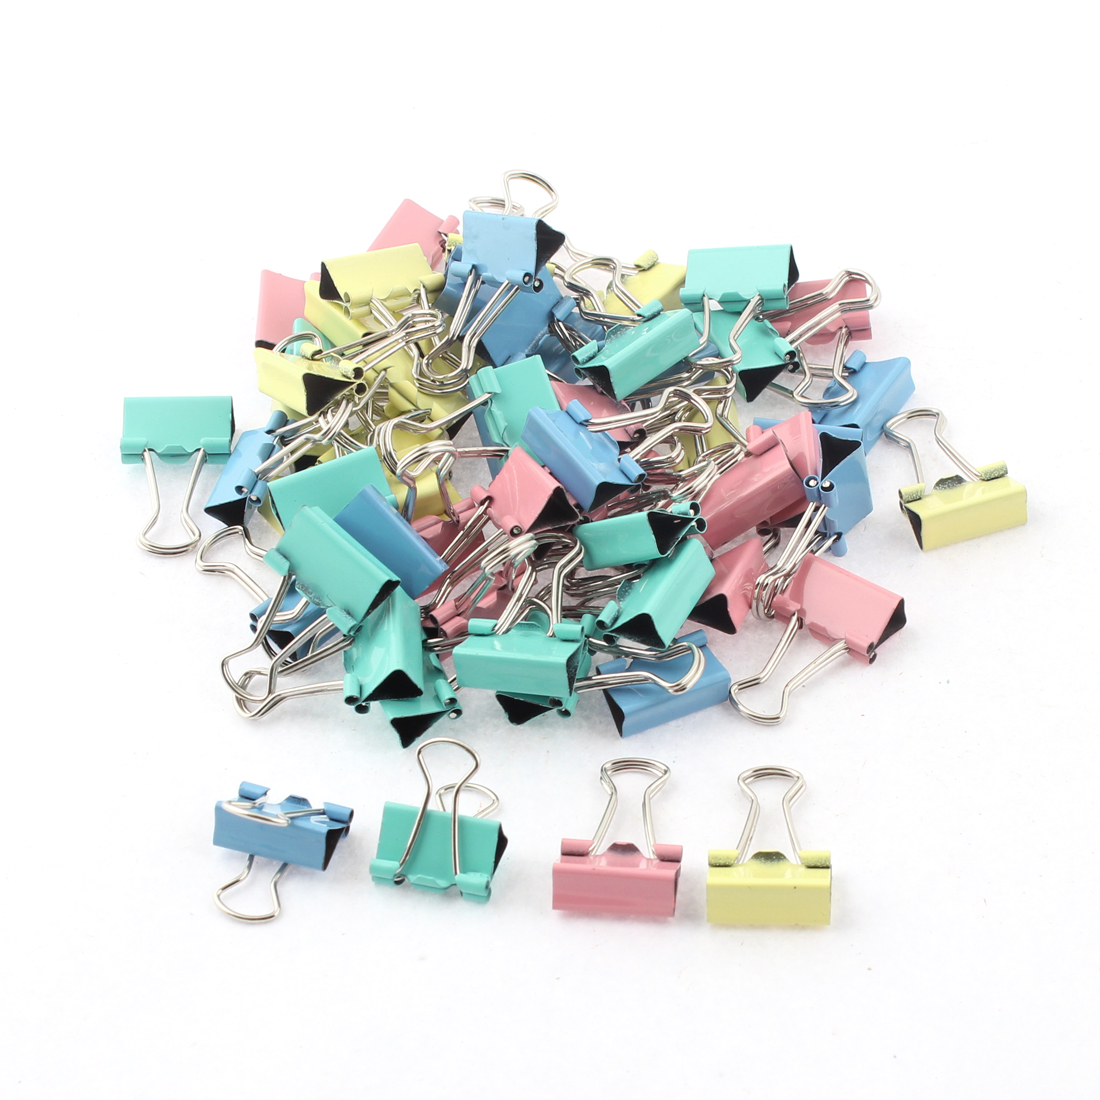 Home Office School Student Document Paper File Binder Clips Clamp 60pcs